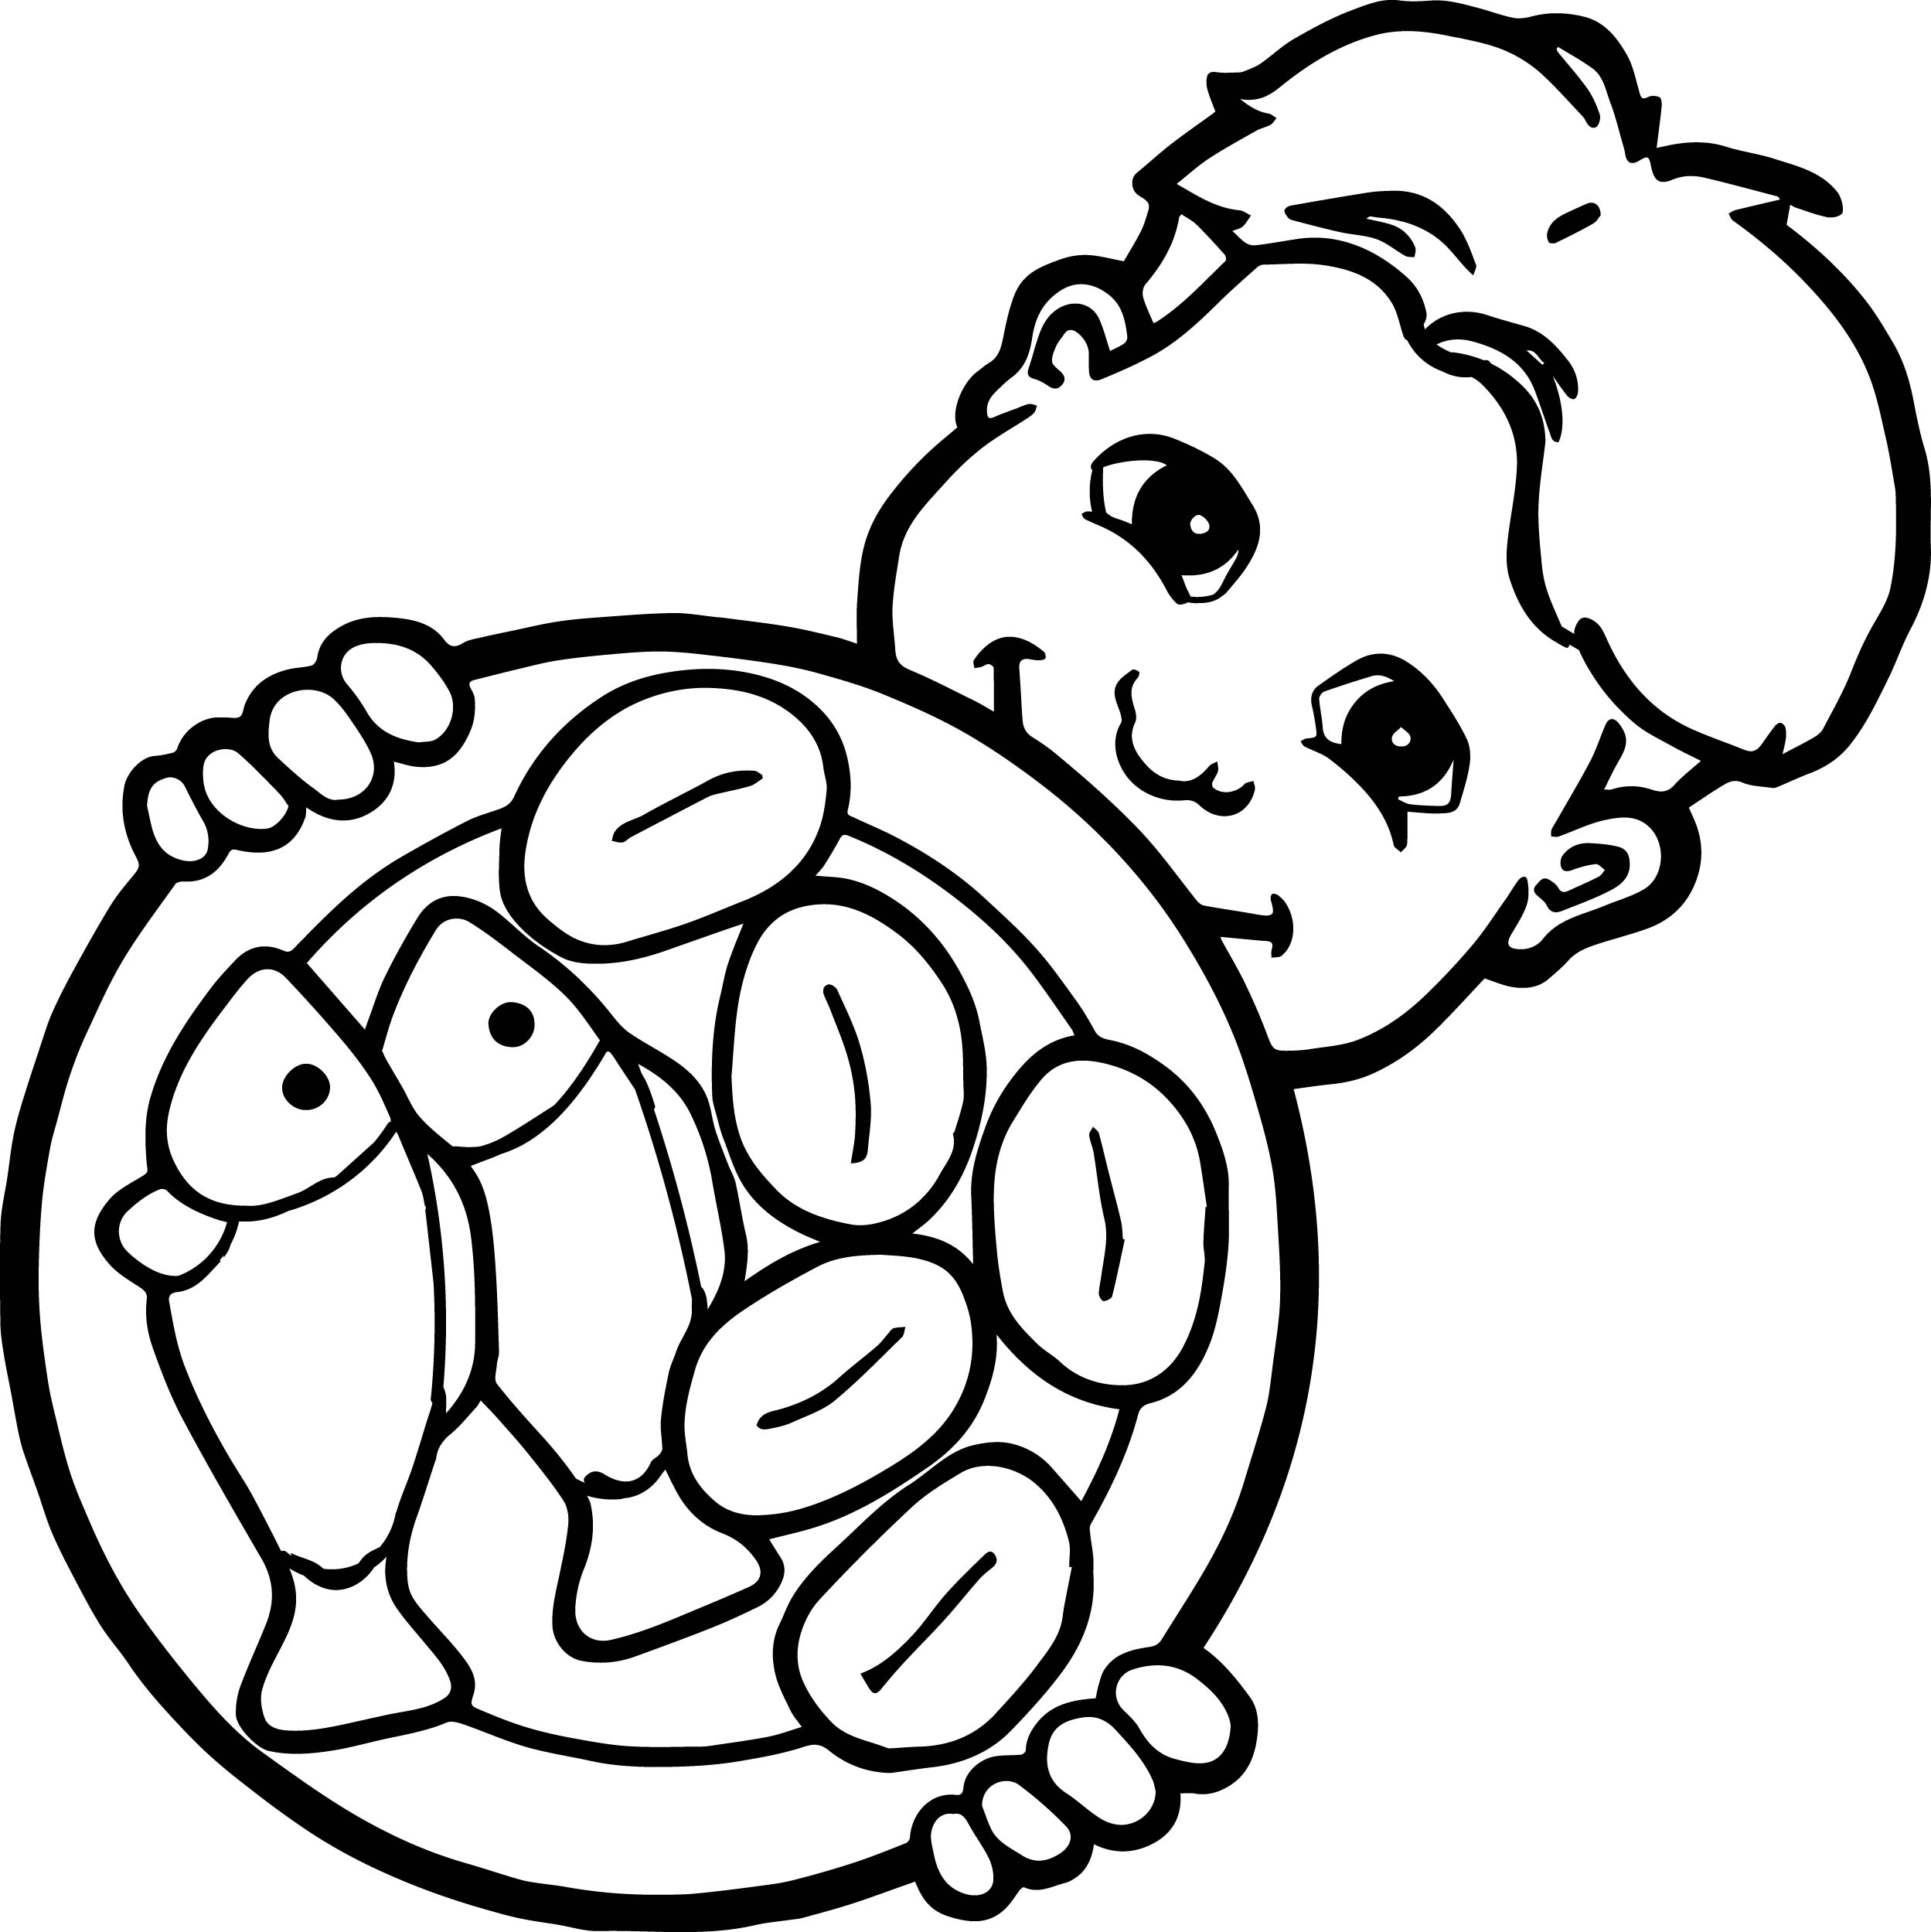 5 Loaves And 2 Fish Child Coloring Page | Wecoloringpage